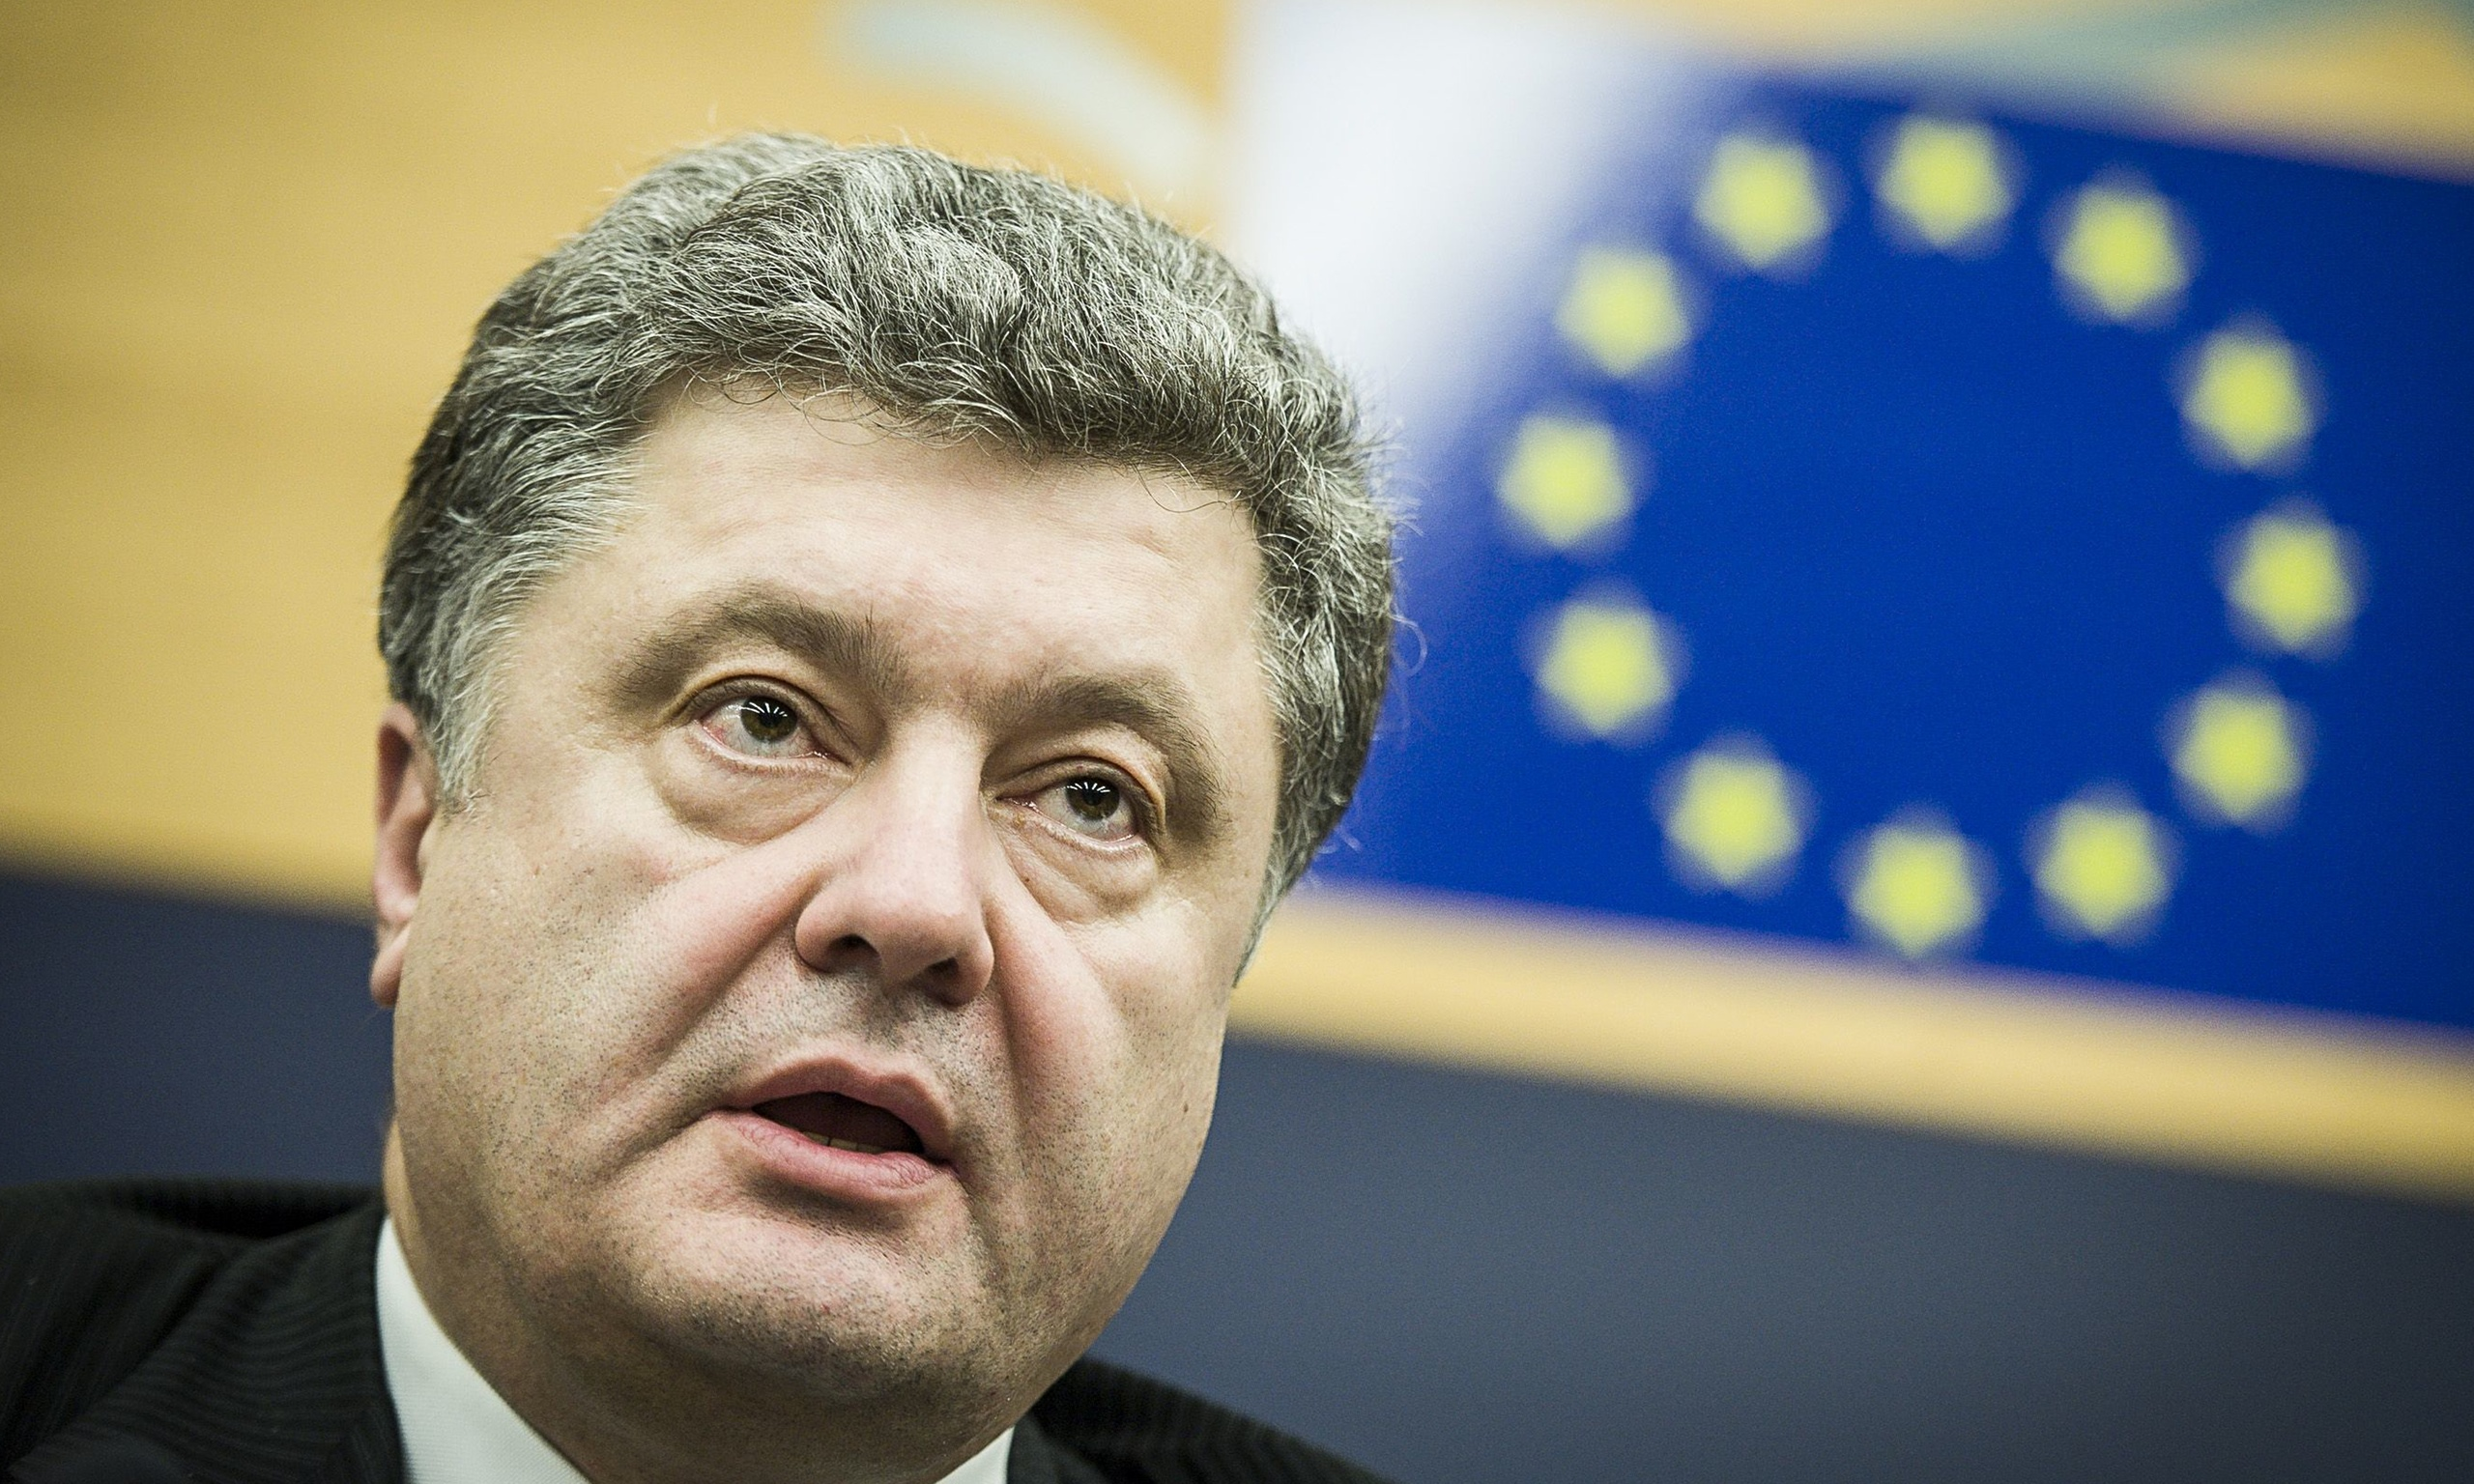 http://www.thetruthseeker.co.uk/wordpress/wp-content/uploads/2014/07/poroshenko.jpg